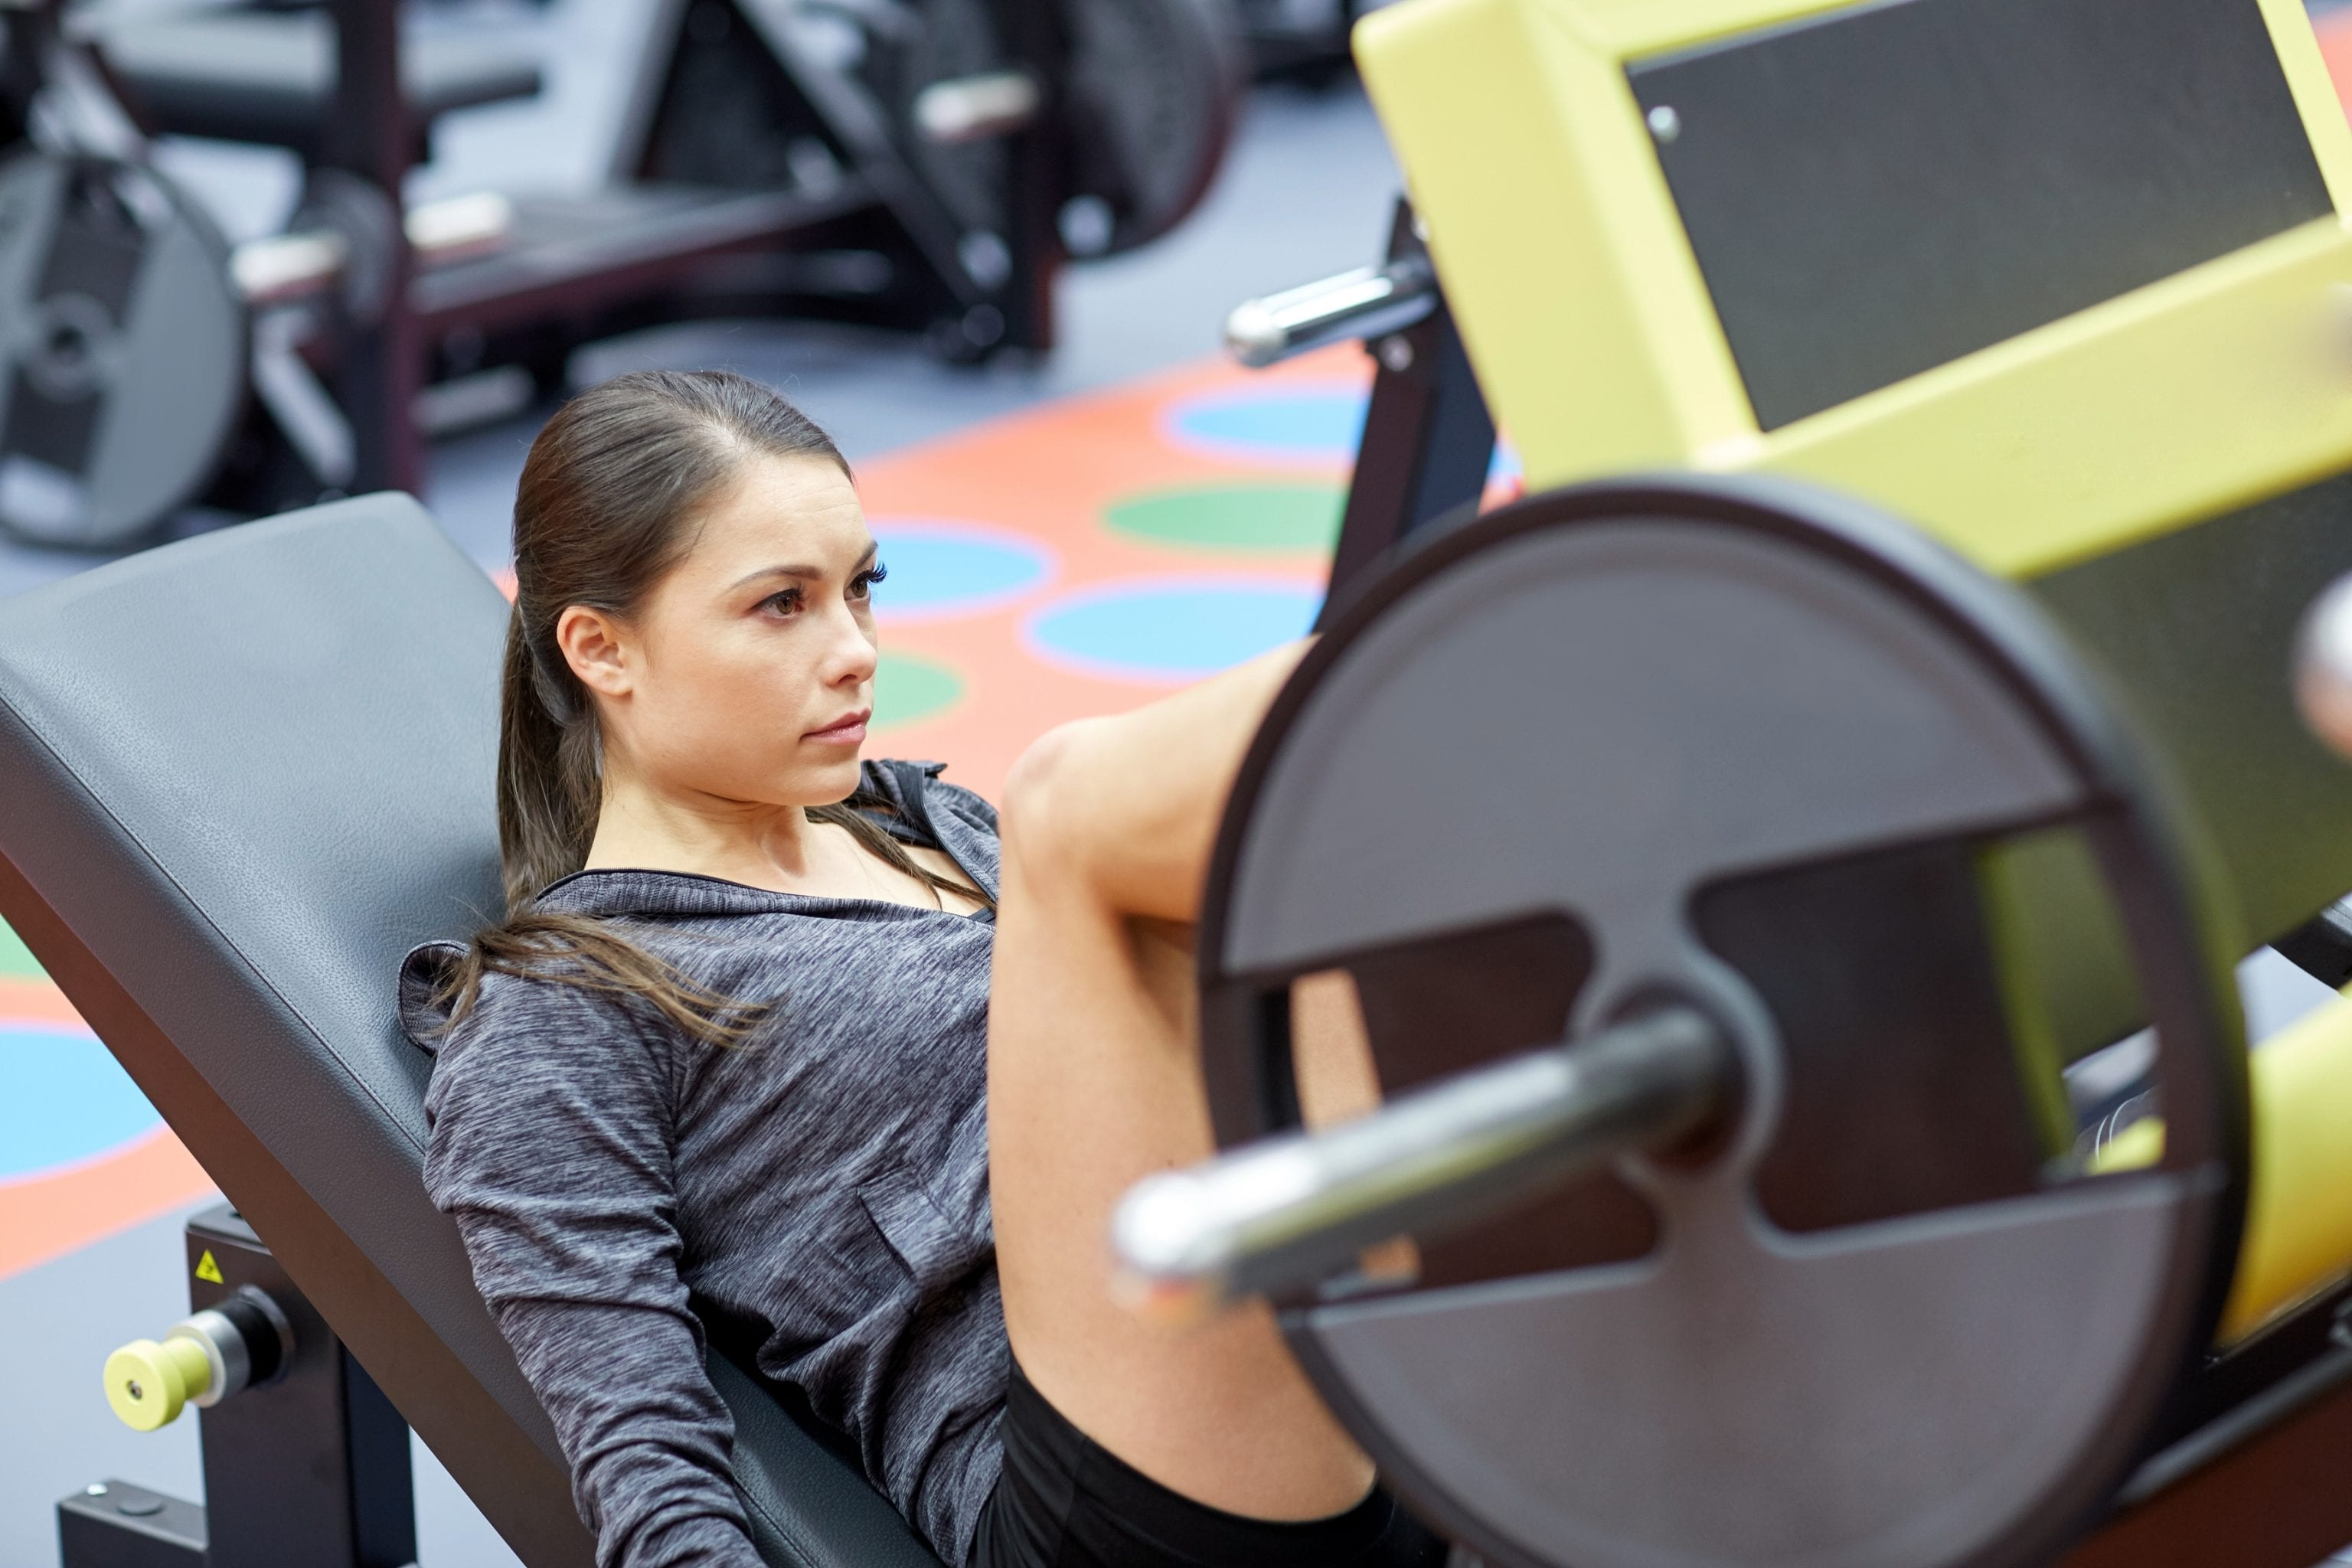 Strength Training for Exercise, and Weight Loss Results